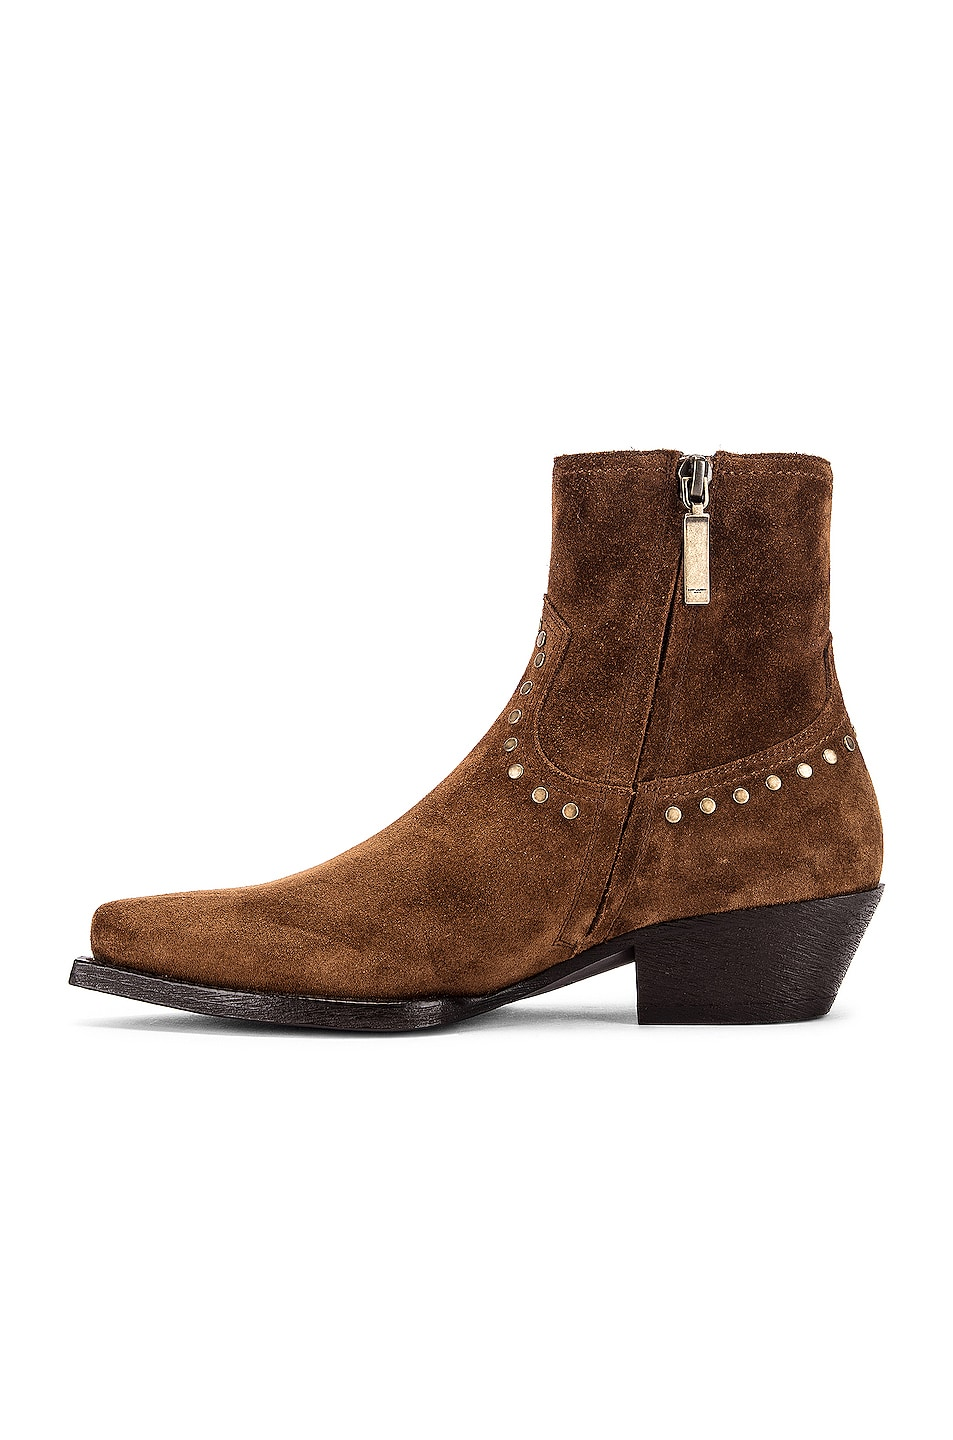 Image 5 of Saint Laurent Lukas Zip Stud Ankle Booties in Land